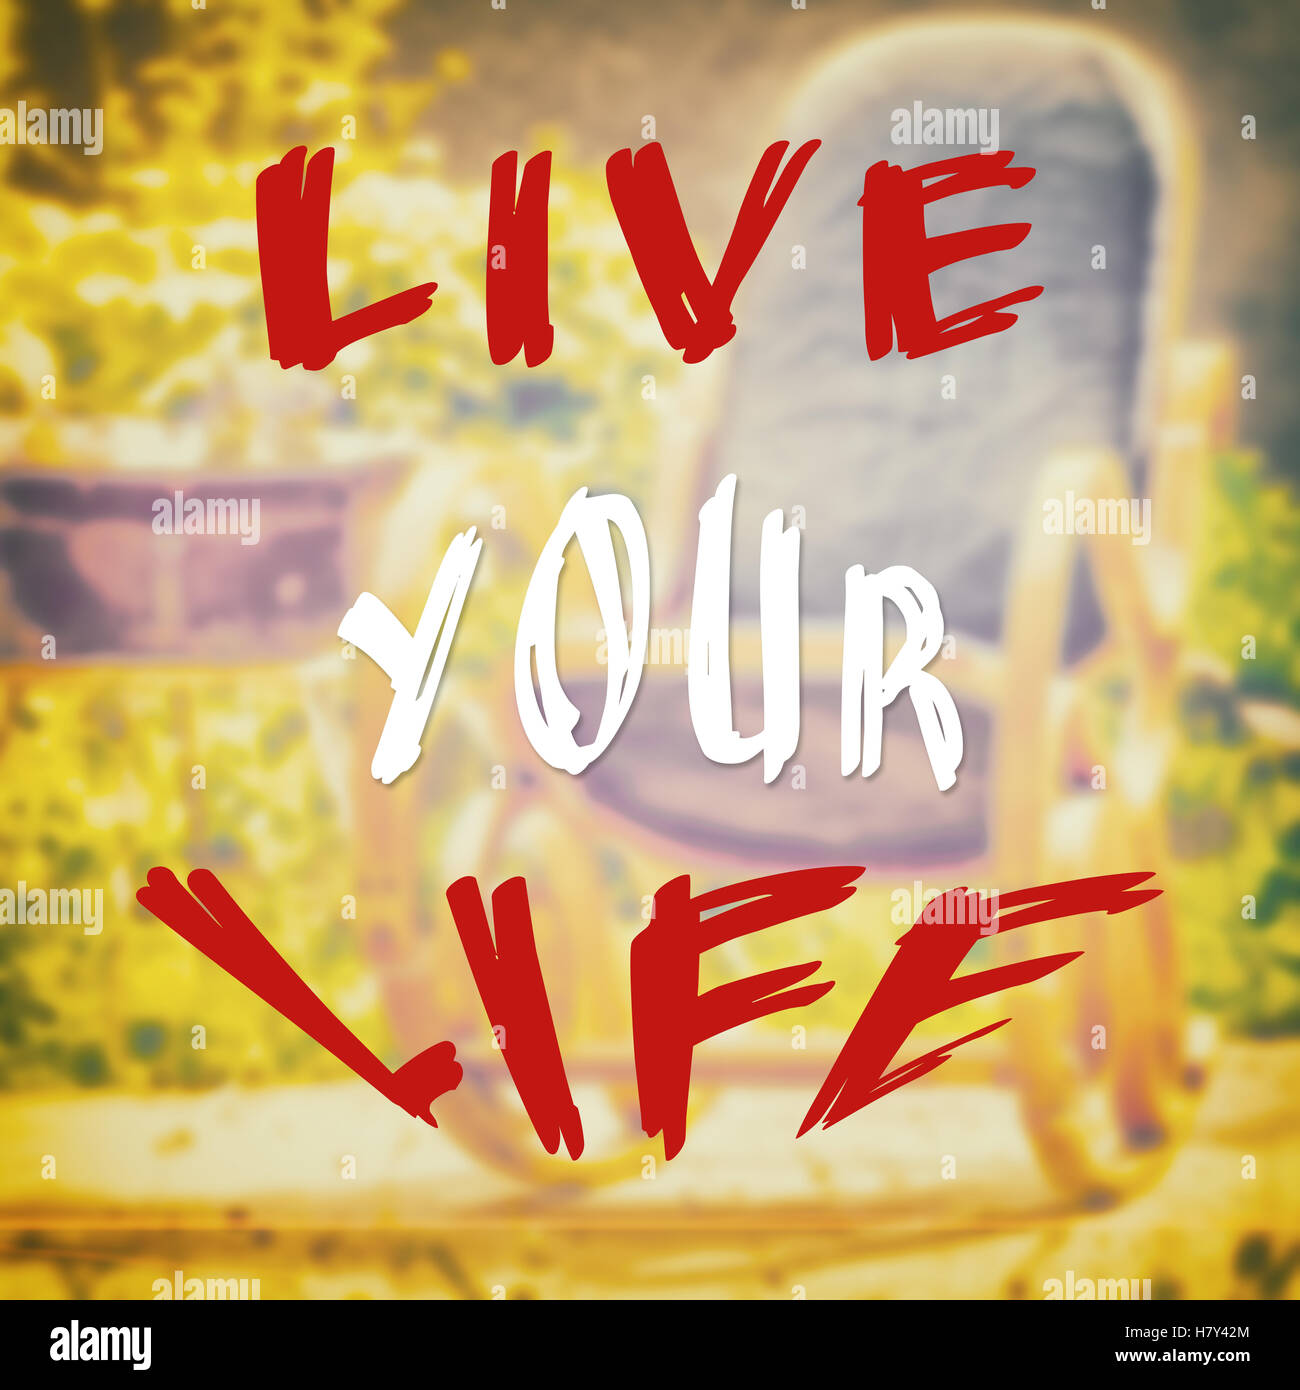 Motivational and optimistic quote with live your life text on filter wallpaper - Stock Image